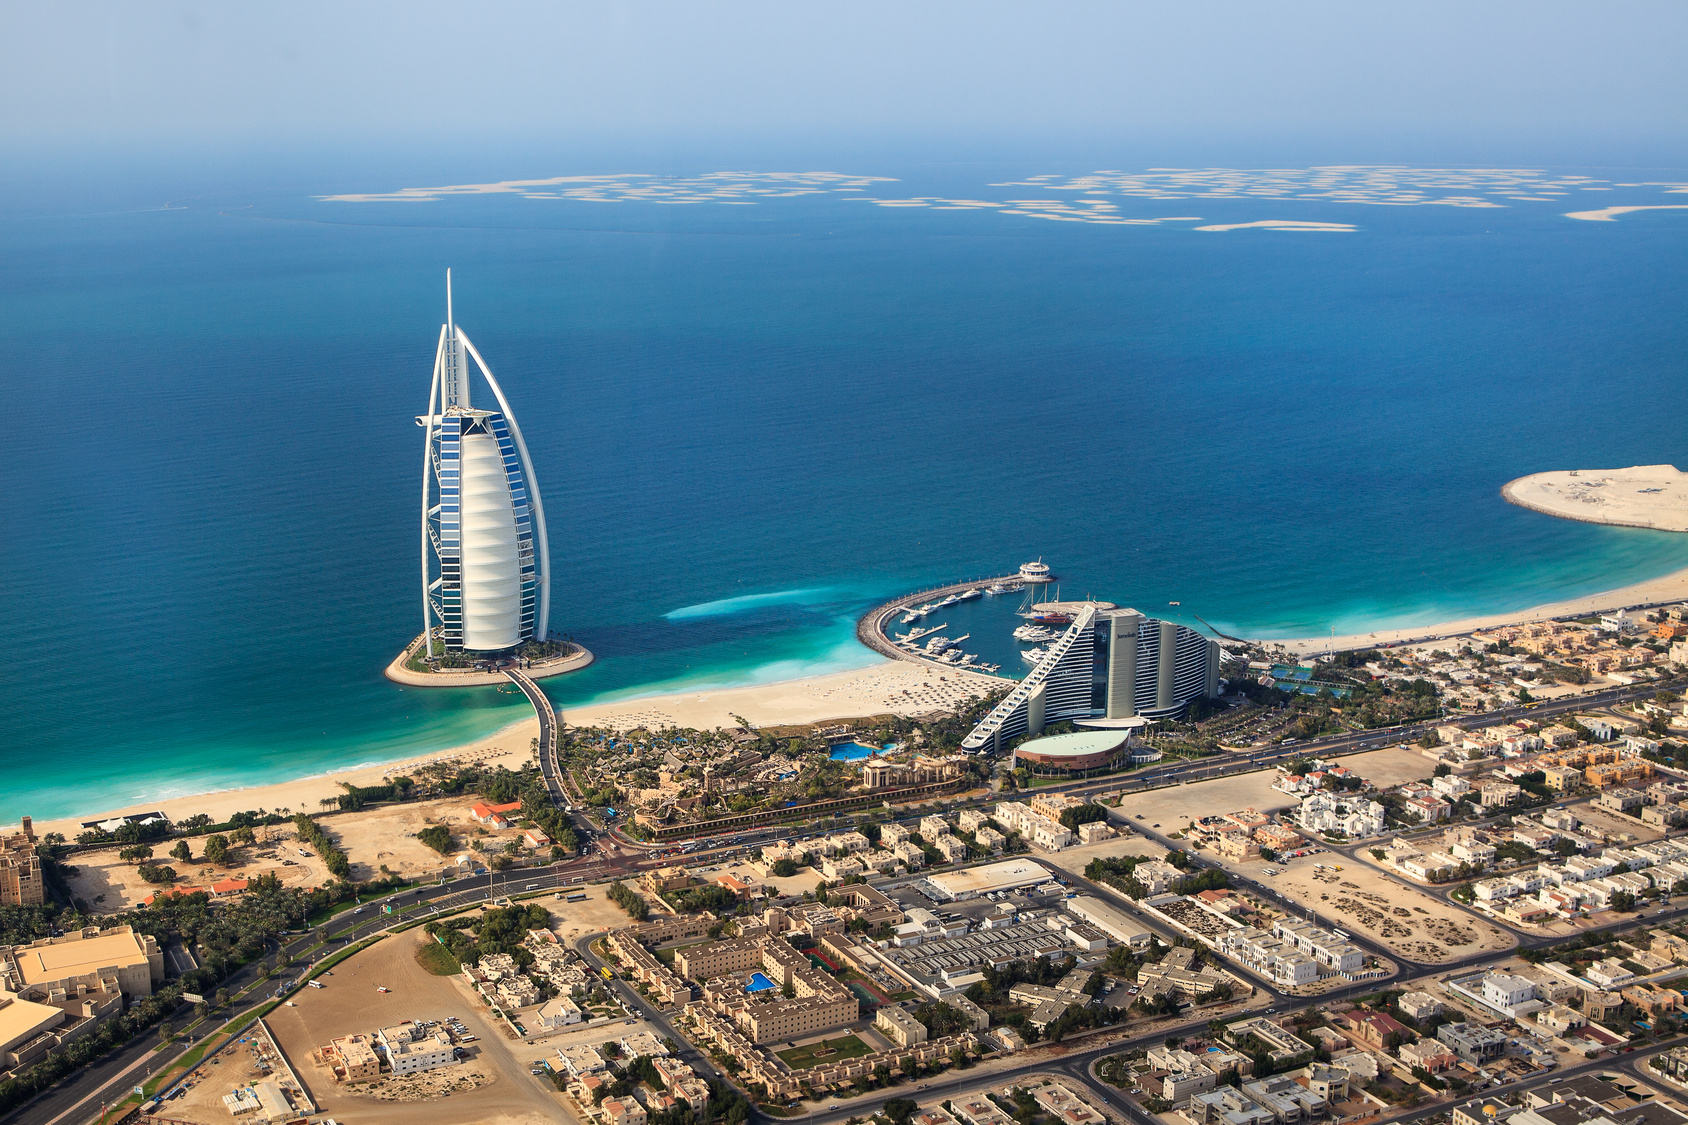 Burj Al Arab from above Dubai